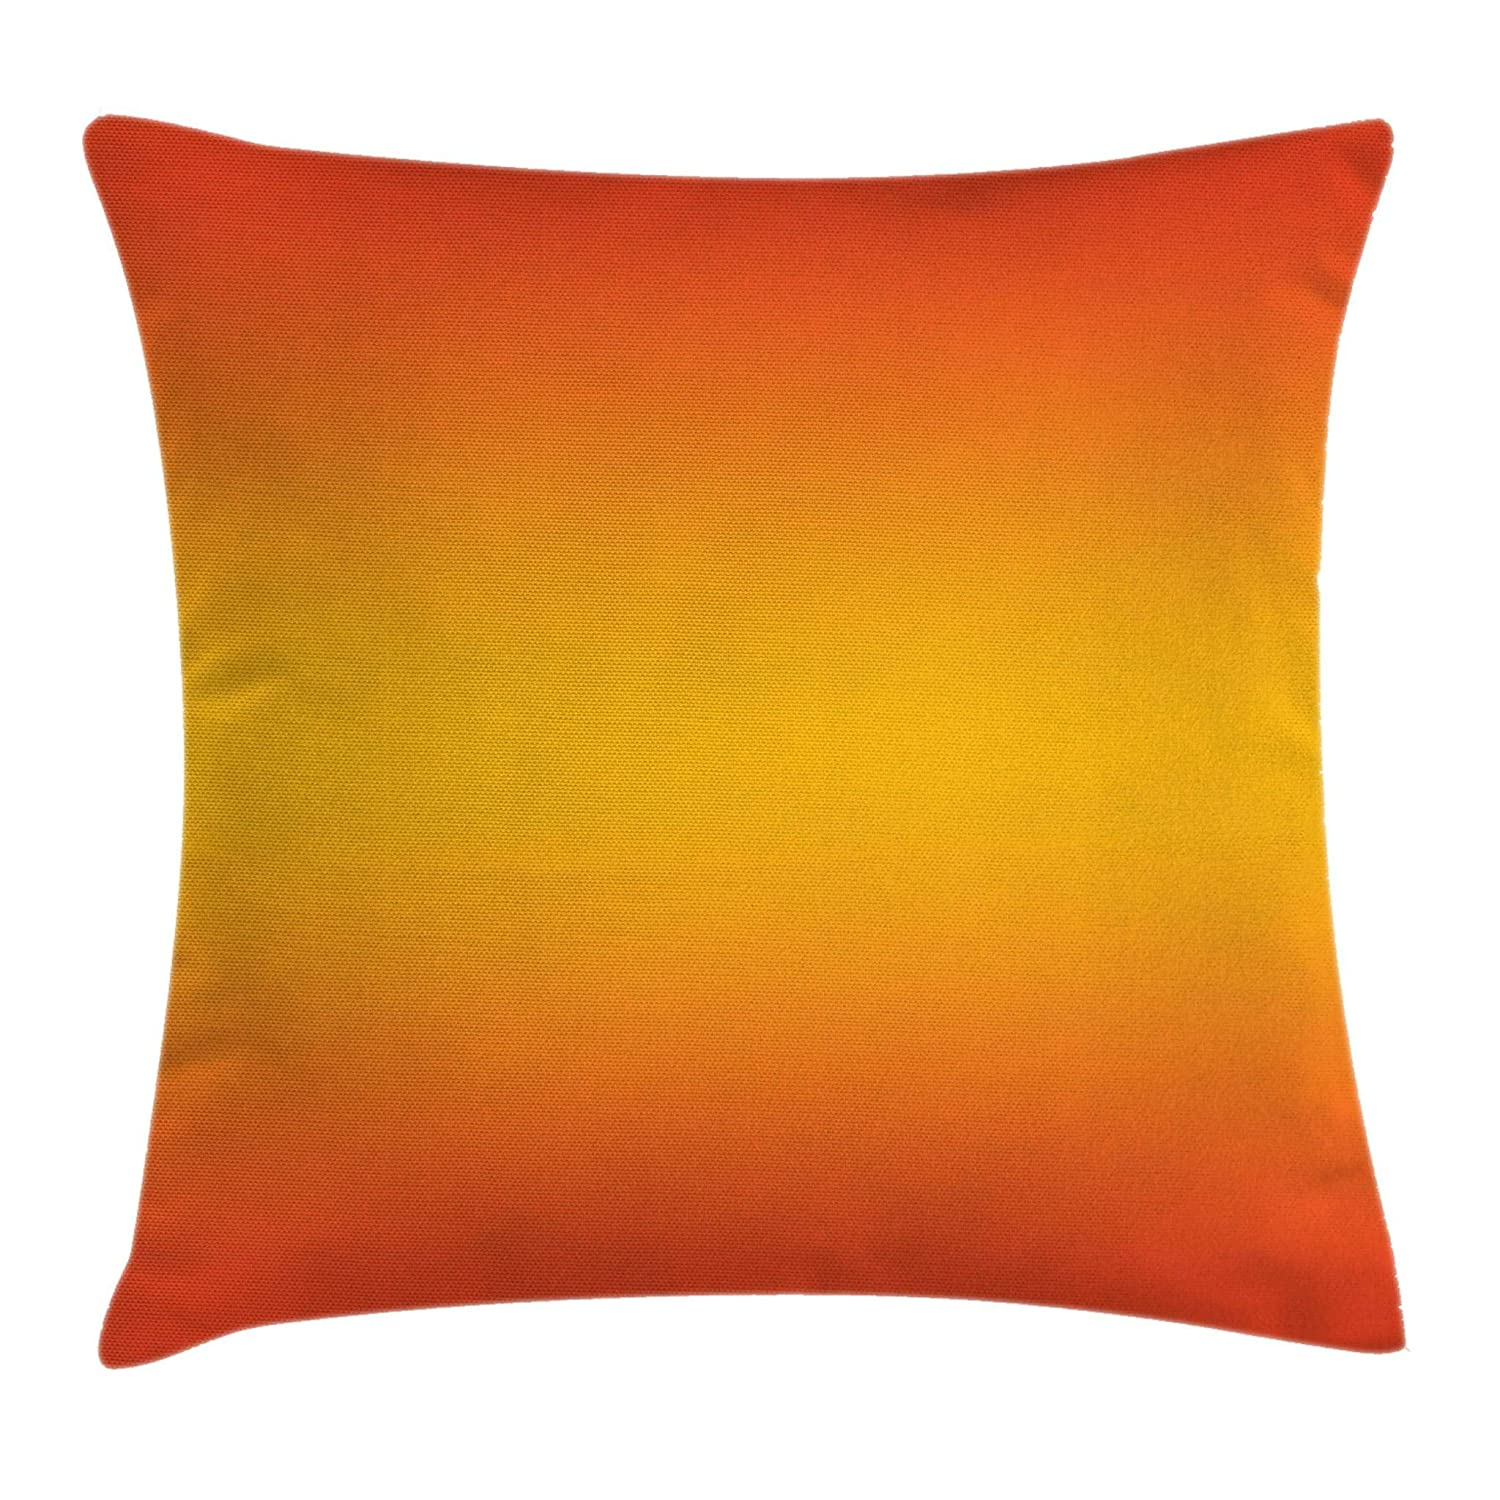 """Ambesonne Ombre Throw Pillow Cushion Cover, Tropical Sunset Seasons of The Year Inspired Summer Themed Design Modern, Decorative Square Accent Pillow Case, 18"""" X 18"""", Orange Yellow"""